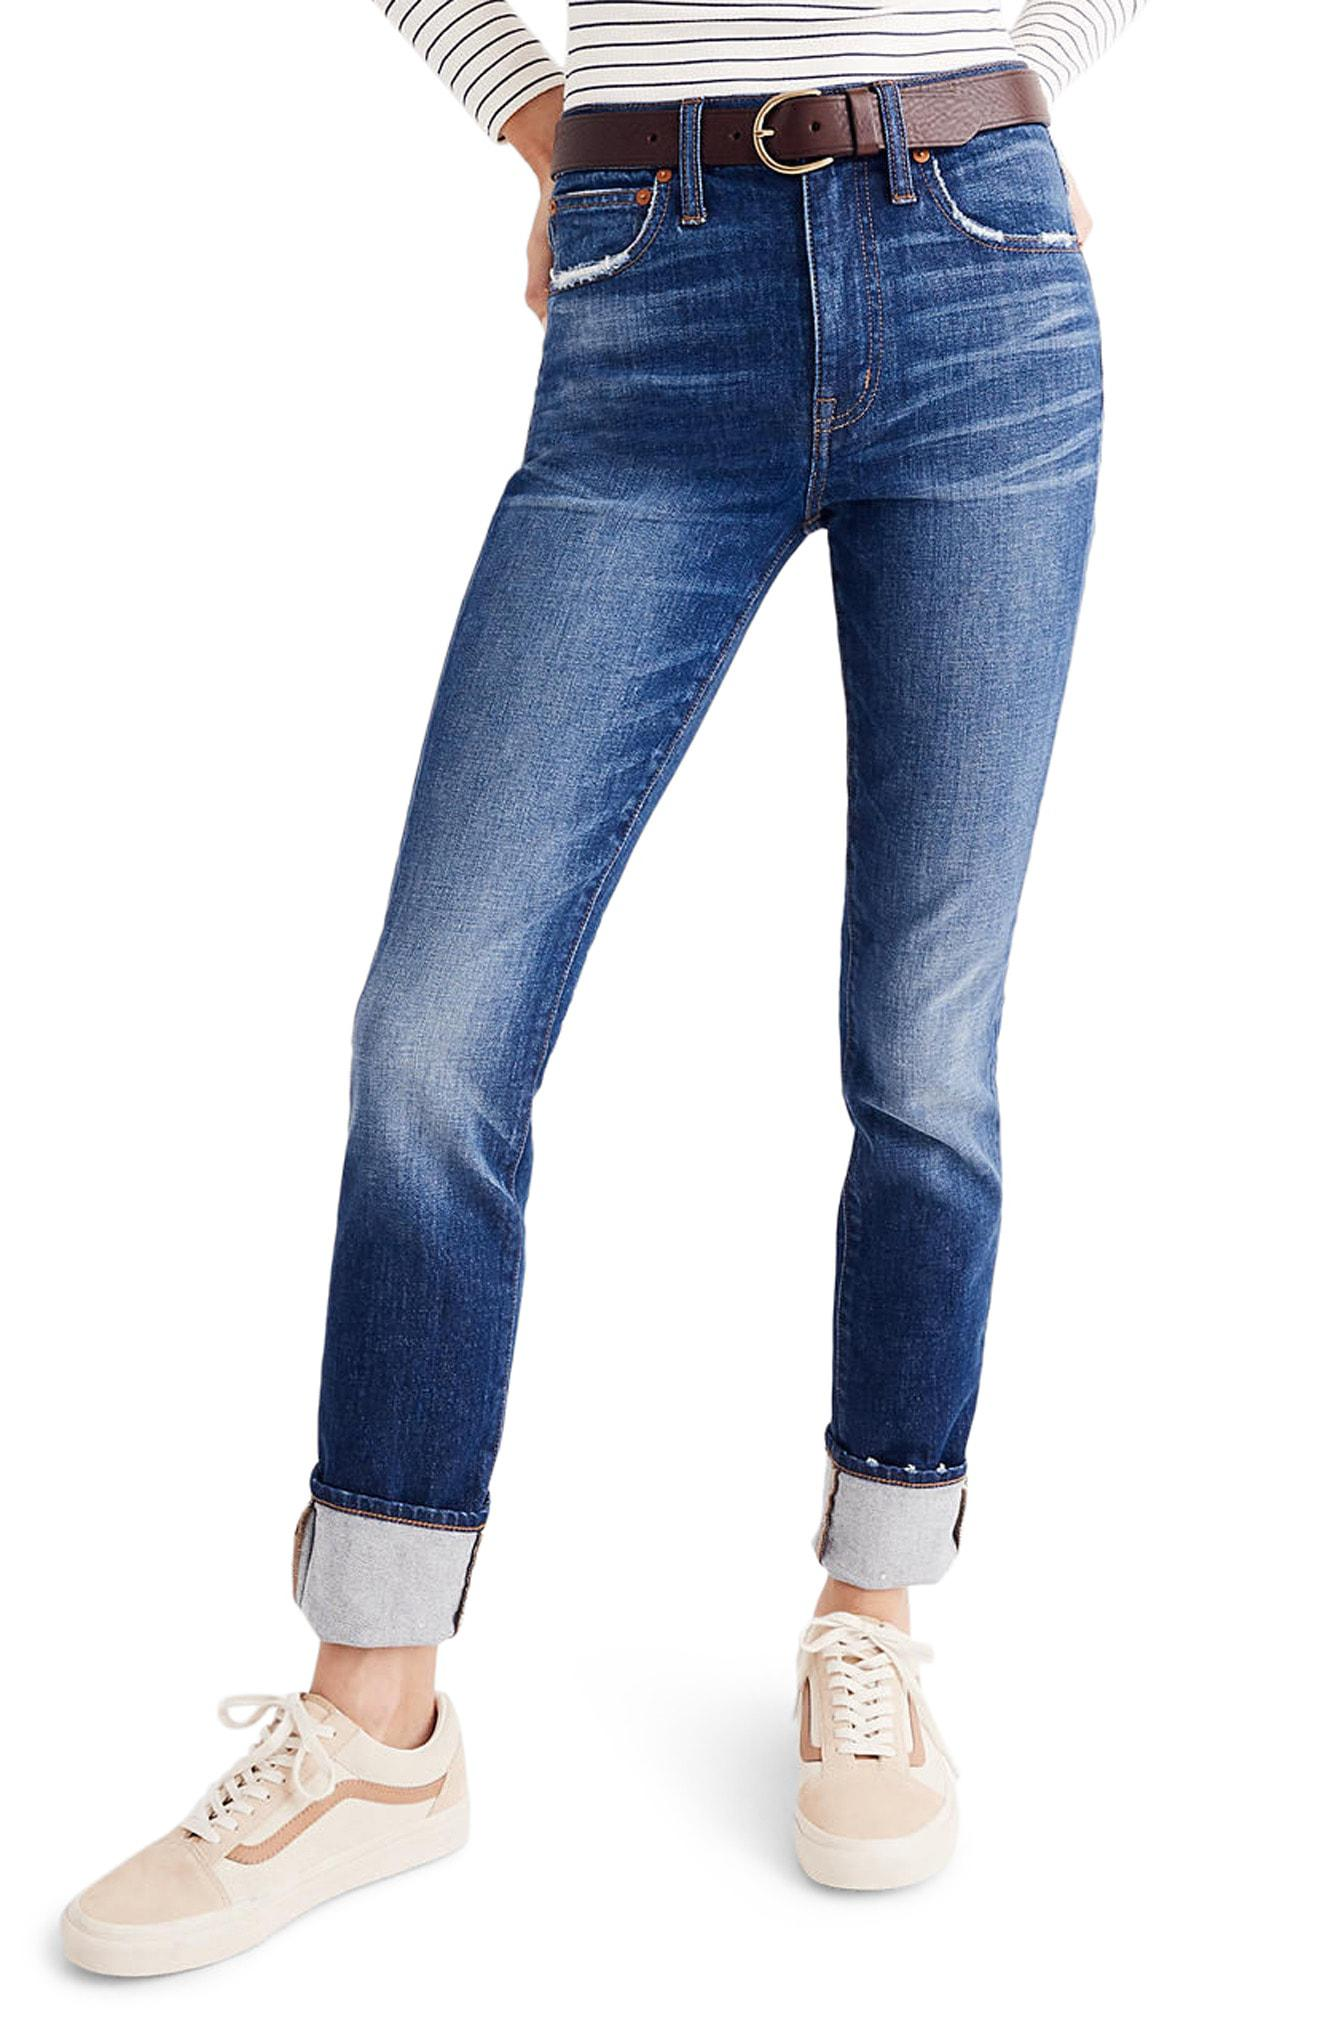 28b9dc1358785f Gallery. Previously sold at: Nordstrom · Women's Boyfriend Jeans